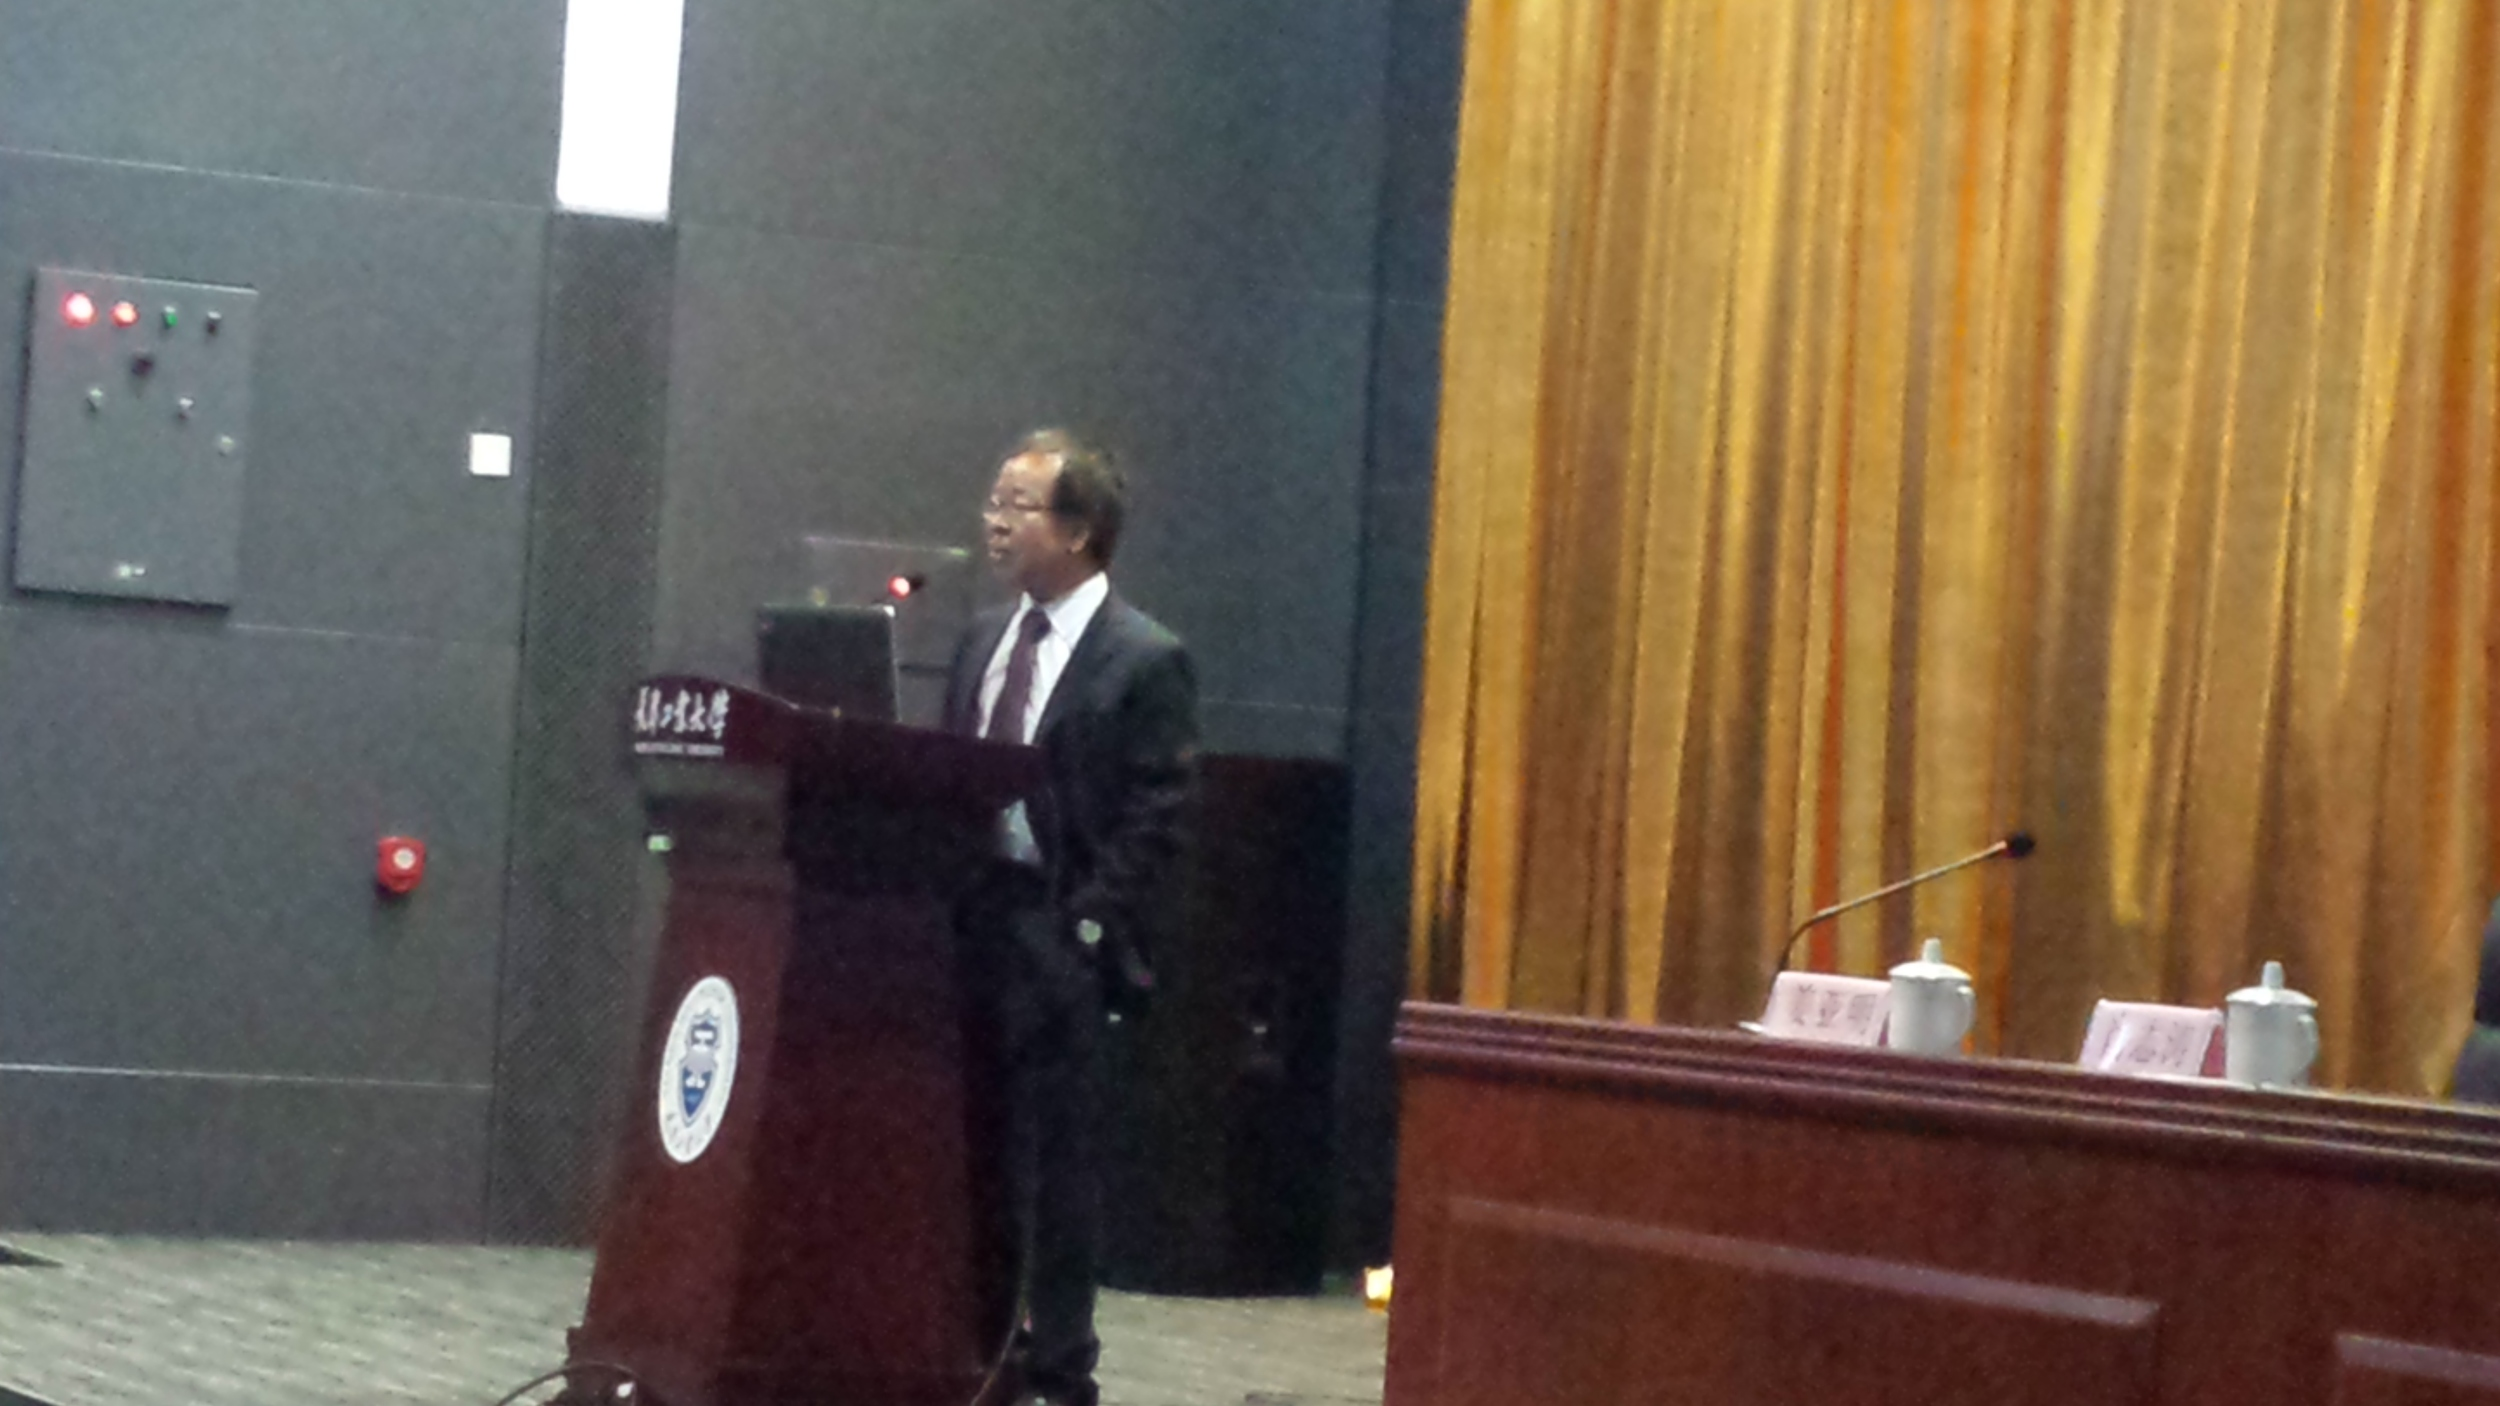 Professor Jiangtao Xi, Head of SECTE, UOW giving opening speech at Tianjin Polytechnic University's joint program in schools of electronics and information engineering and automation.